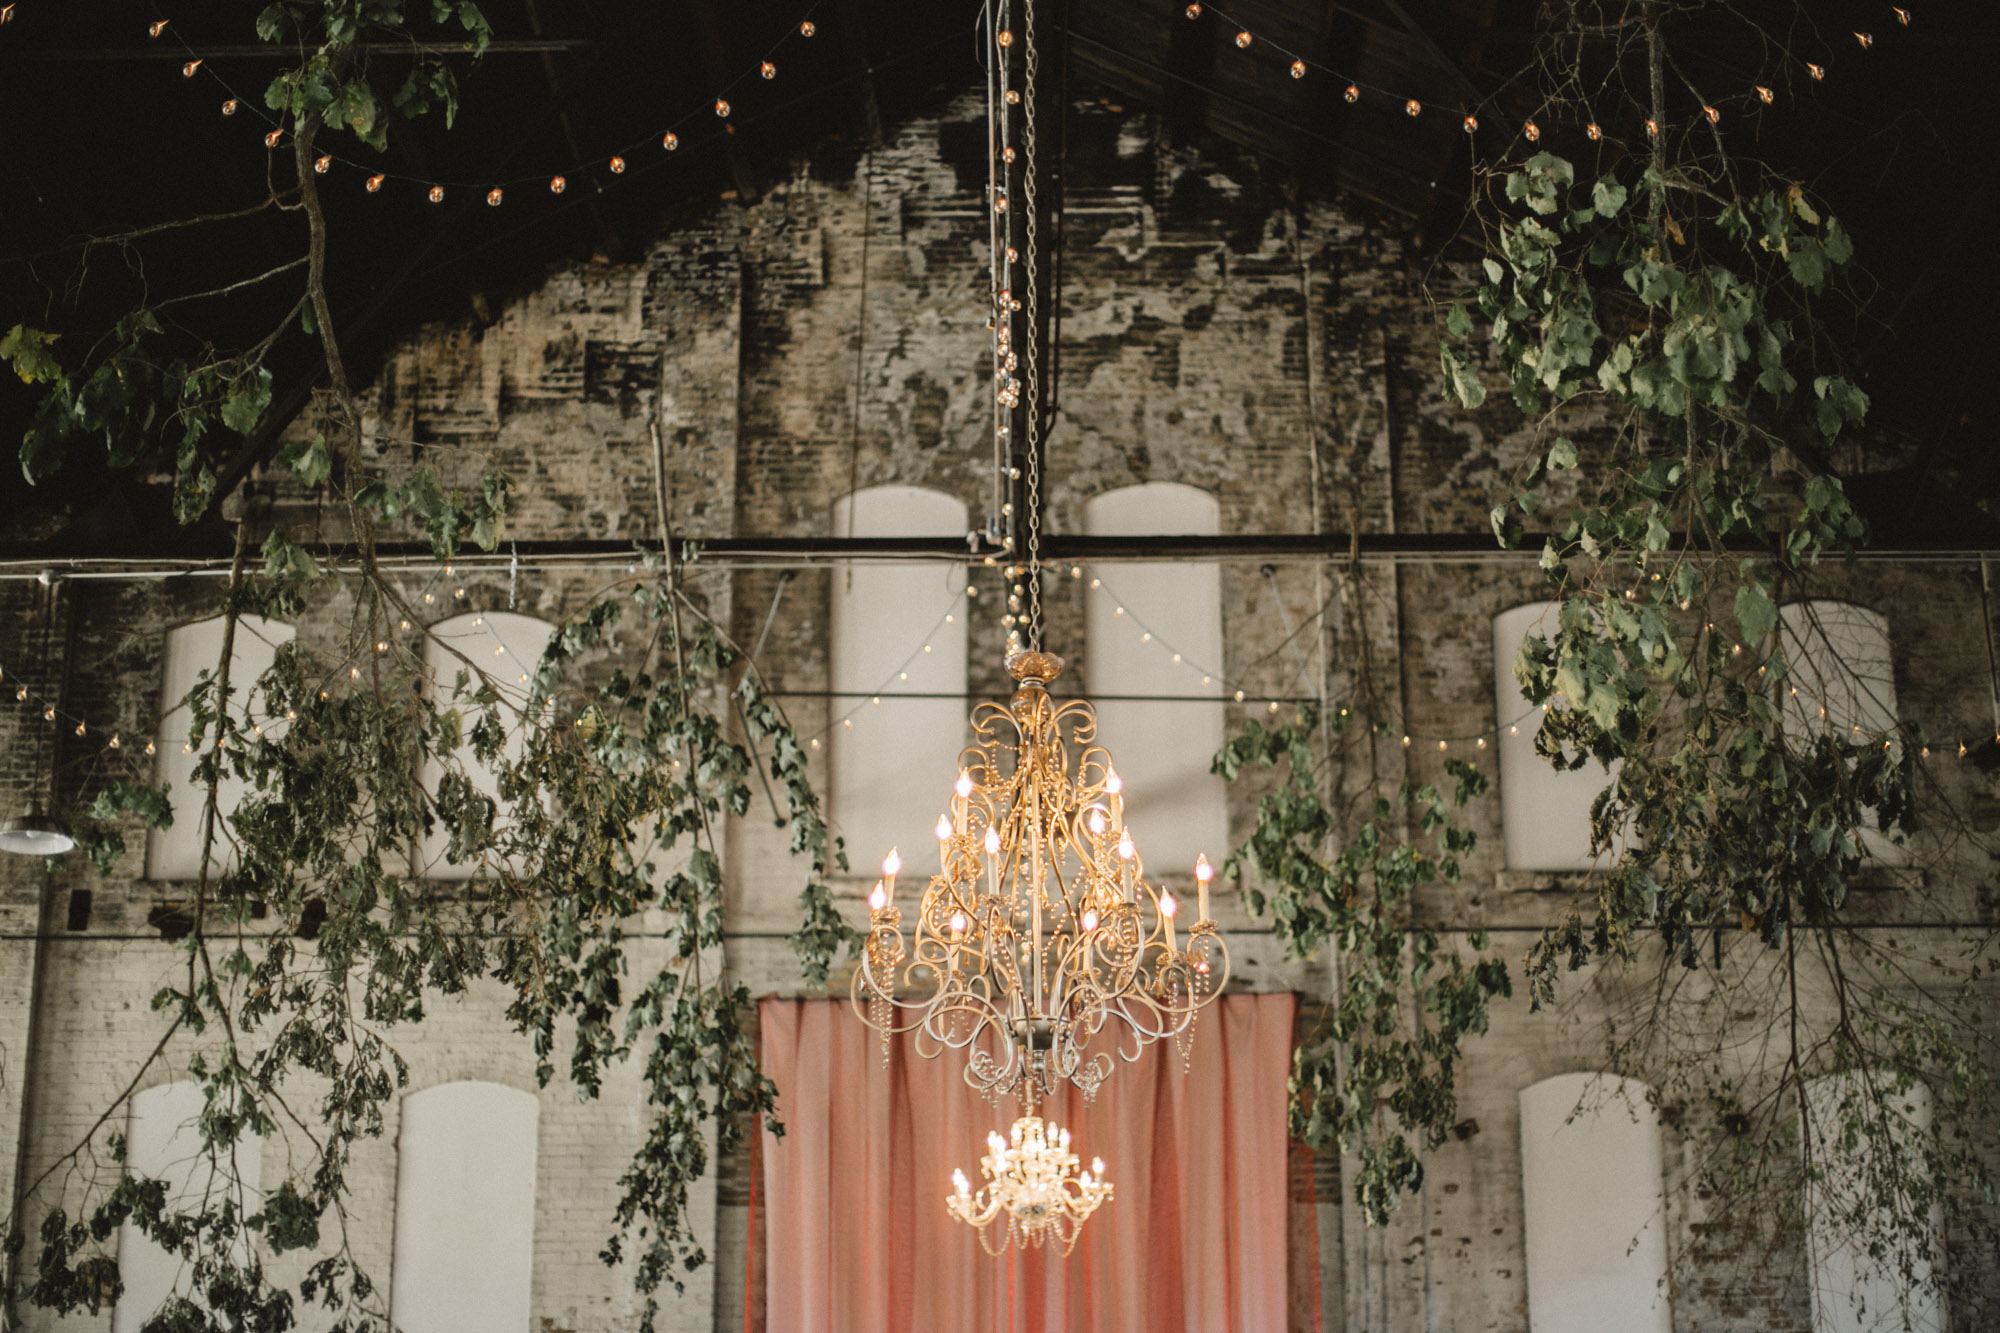 NP Event Space industrial chic wedding, photography by Britt DeZeeuw